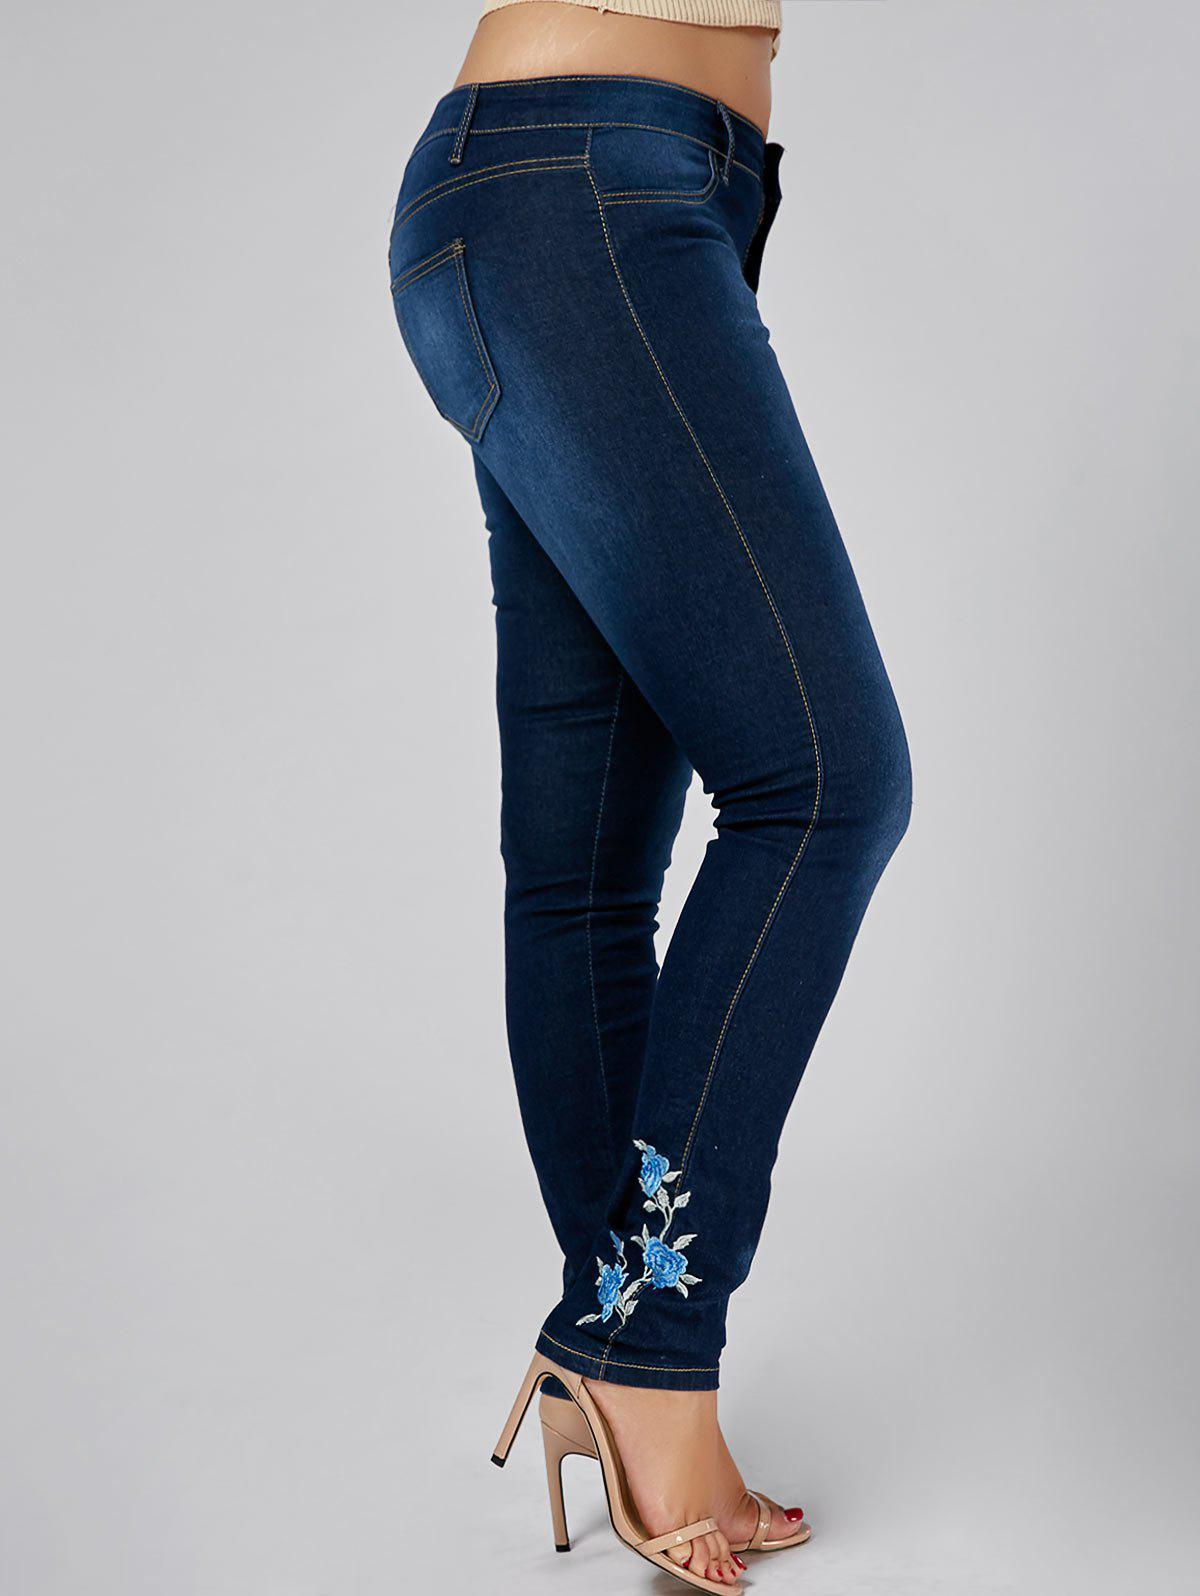 High Waist Plus Size Floral Embroidered Skinny Jeans - DENIM BLUE 3XL